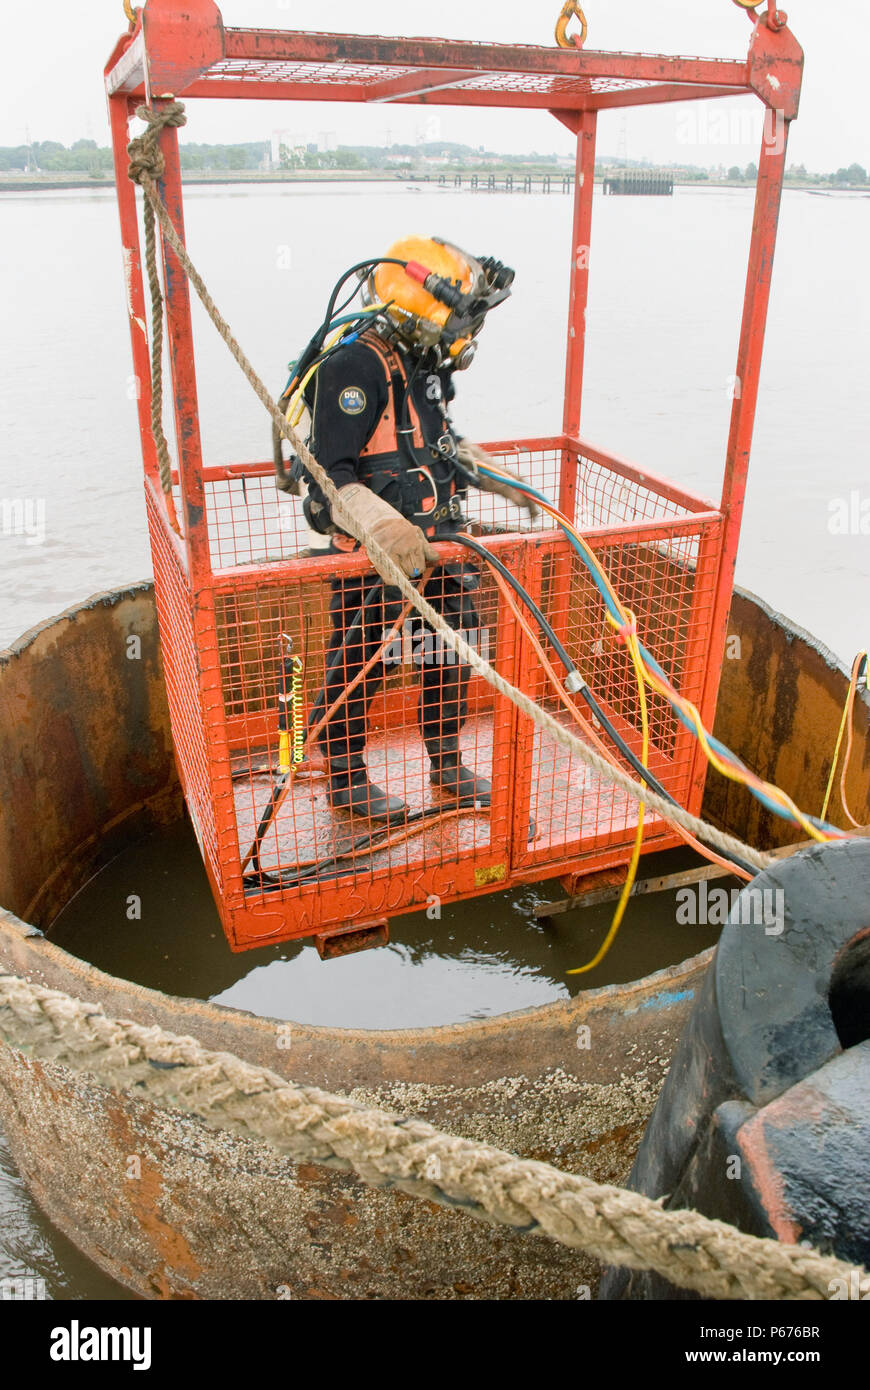 The 2 temp piers had to be cut at river bed level by Divers, this was a tuff job as visibility was poor and the confined space. - Stock Image